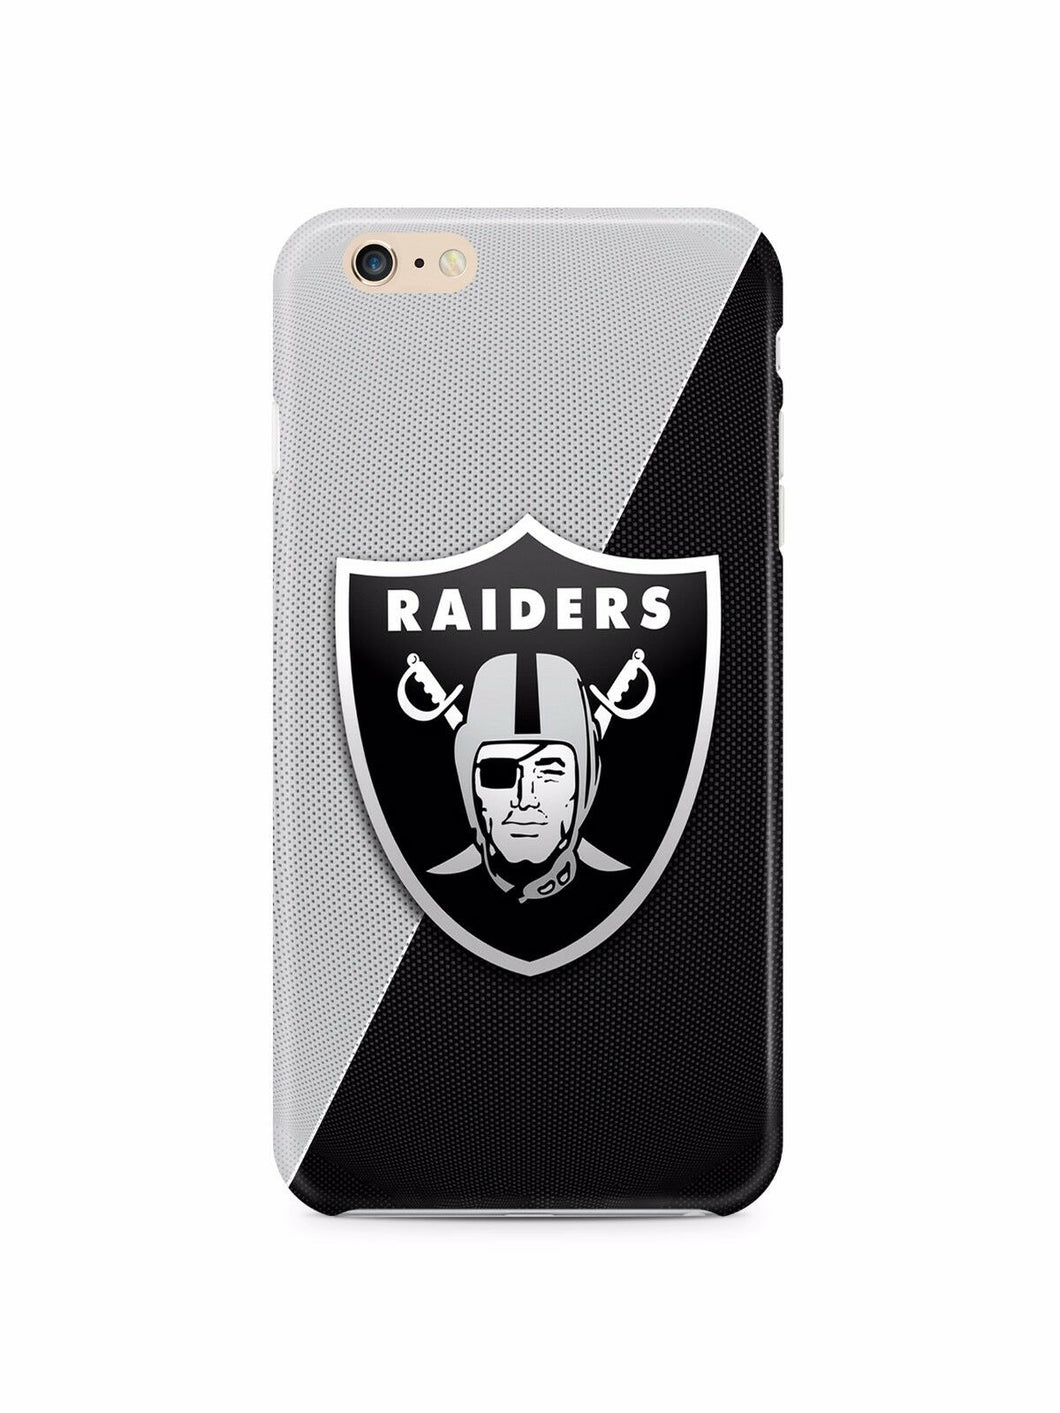 Oakland Raiders Case for Iphone 8 7 6 11 Pro Plus and other models Cover 08